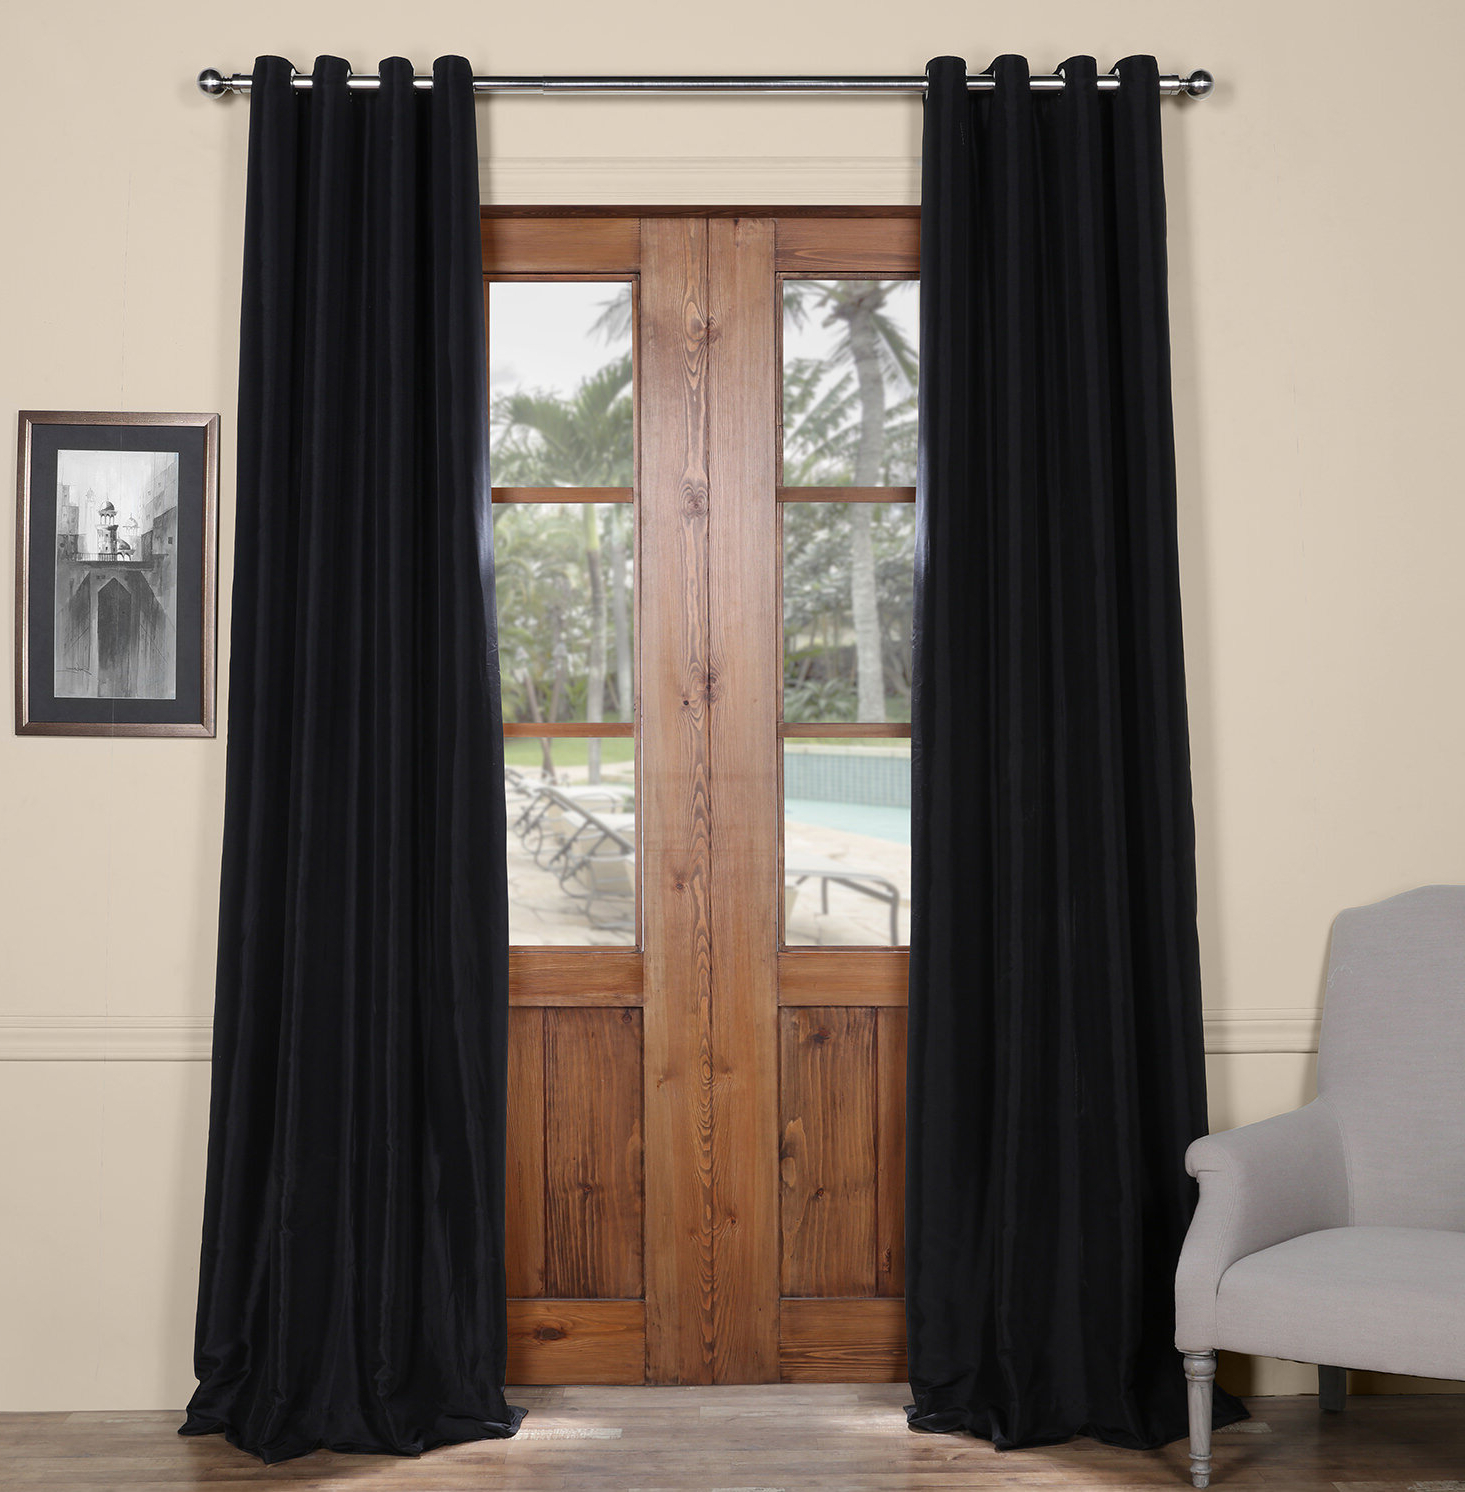 Clapham Solid Blackout Faux Silk Taffeta Thermal Rod Pocket Single Curtain Panel Pertaining To Favorite Faux Silk Taffeta Solid Blackout Single Curtain Panels (View 9 of 20)